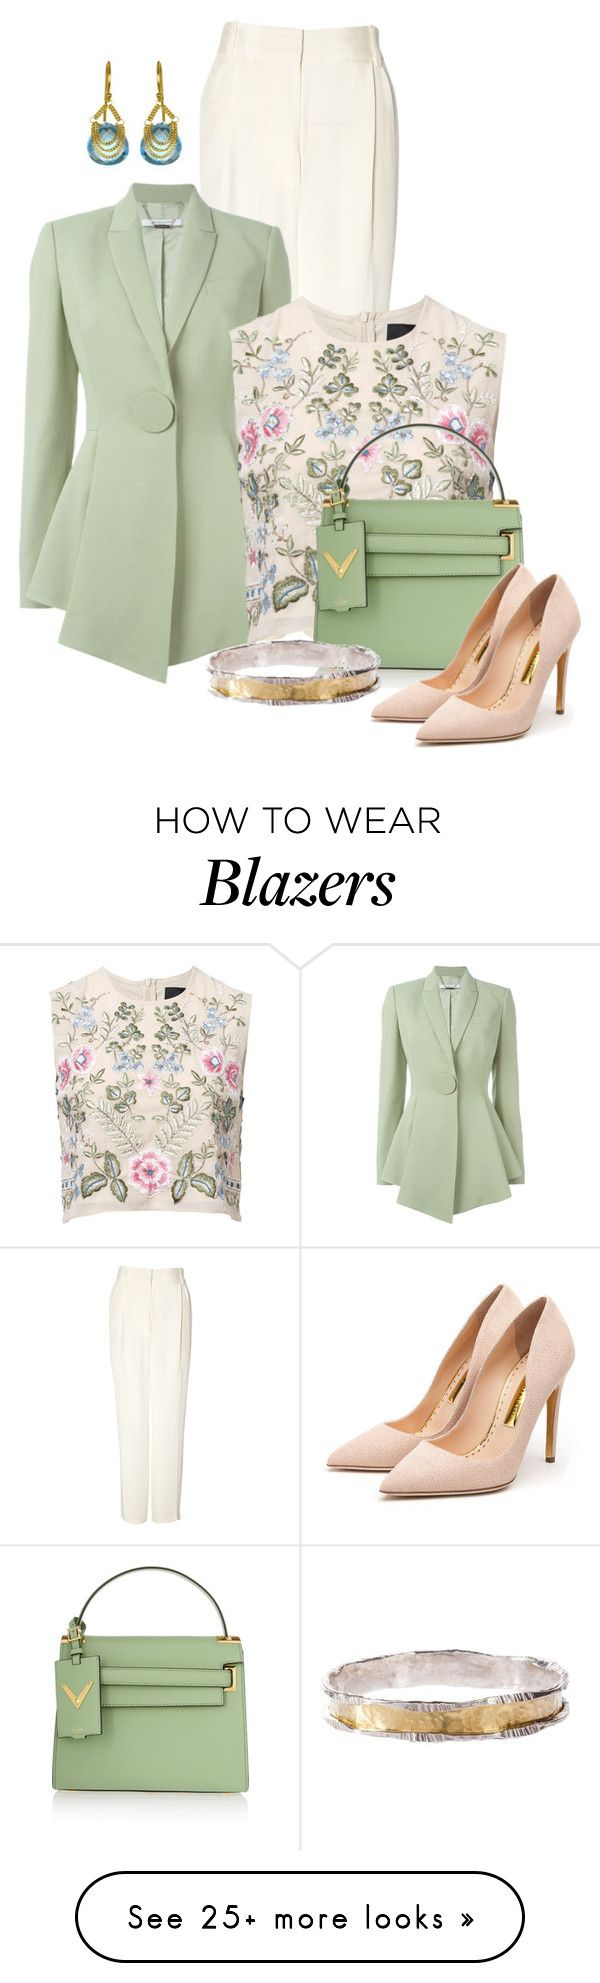 """Untitled #2078"" by anfernee-131 on Polyvore featuring 3.1 Phillip Lim, Givenchy, Needle & Thread, Valentino and Rupert Sanderson"